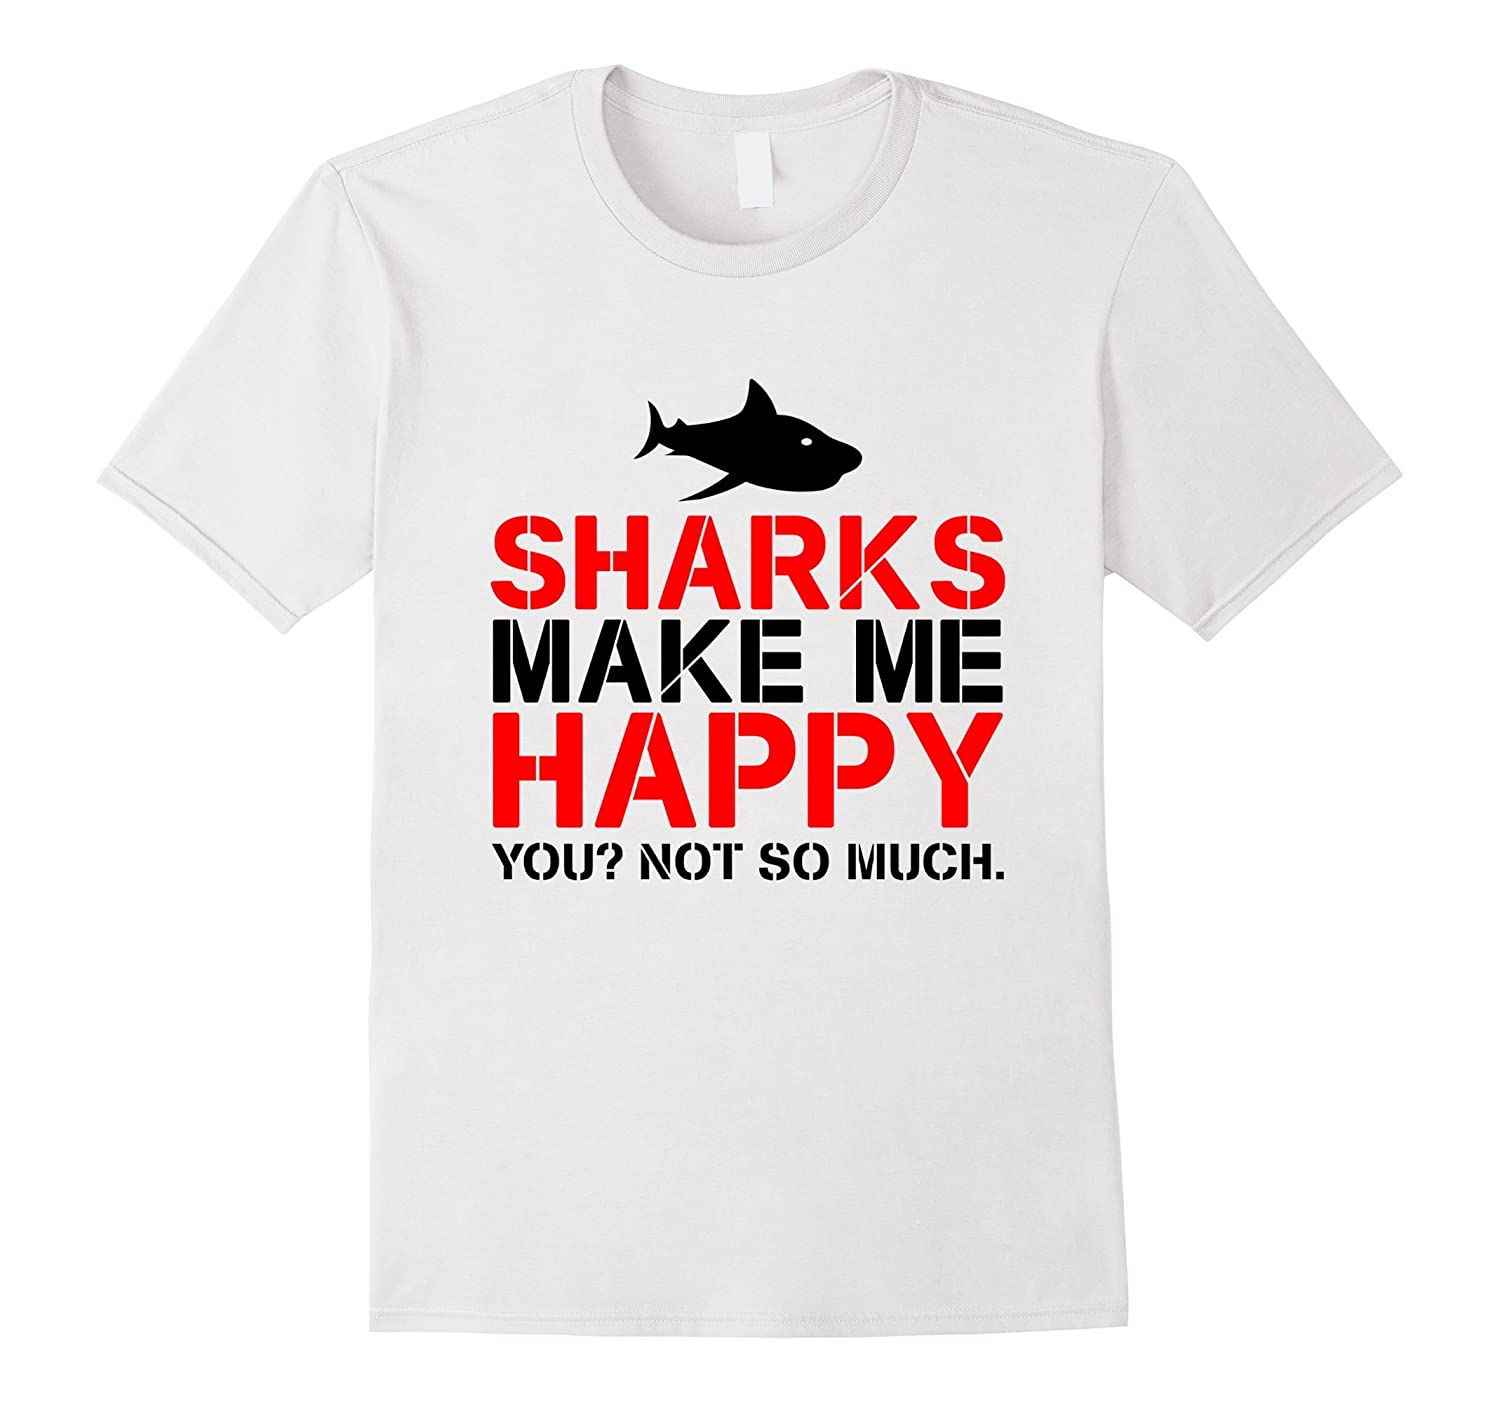 sharks make me happy you not so much t shirt rt rateeshirt. Black Bedroom Furniture Sets. Home Design Ideas